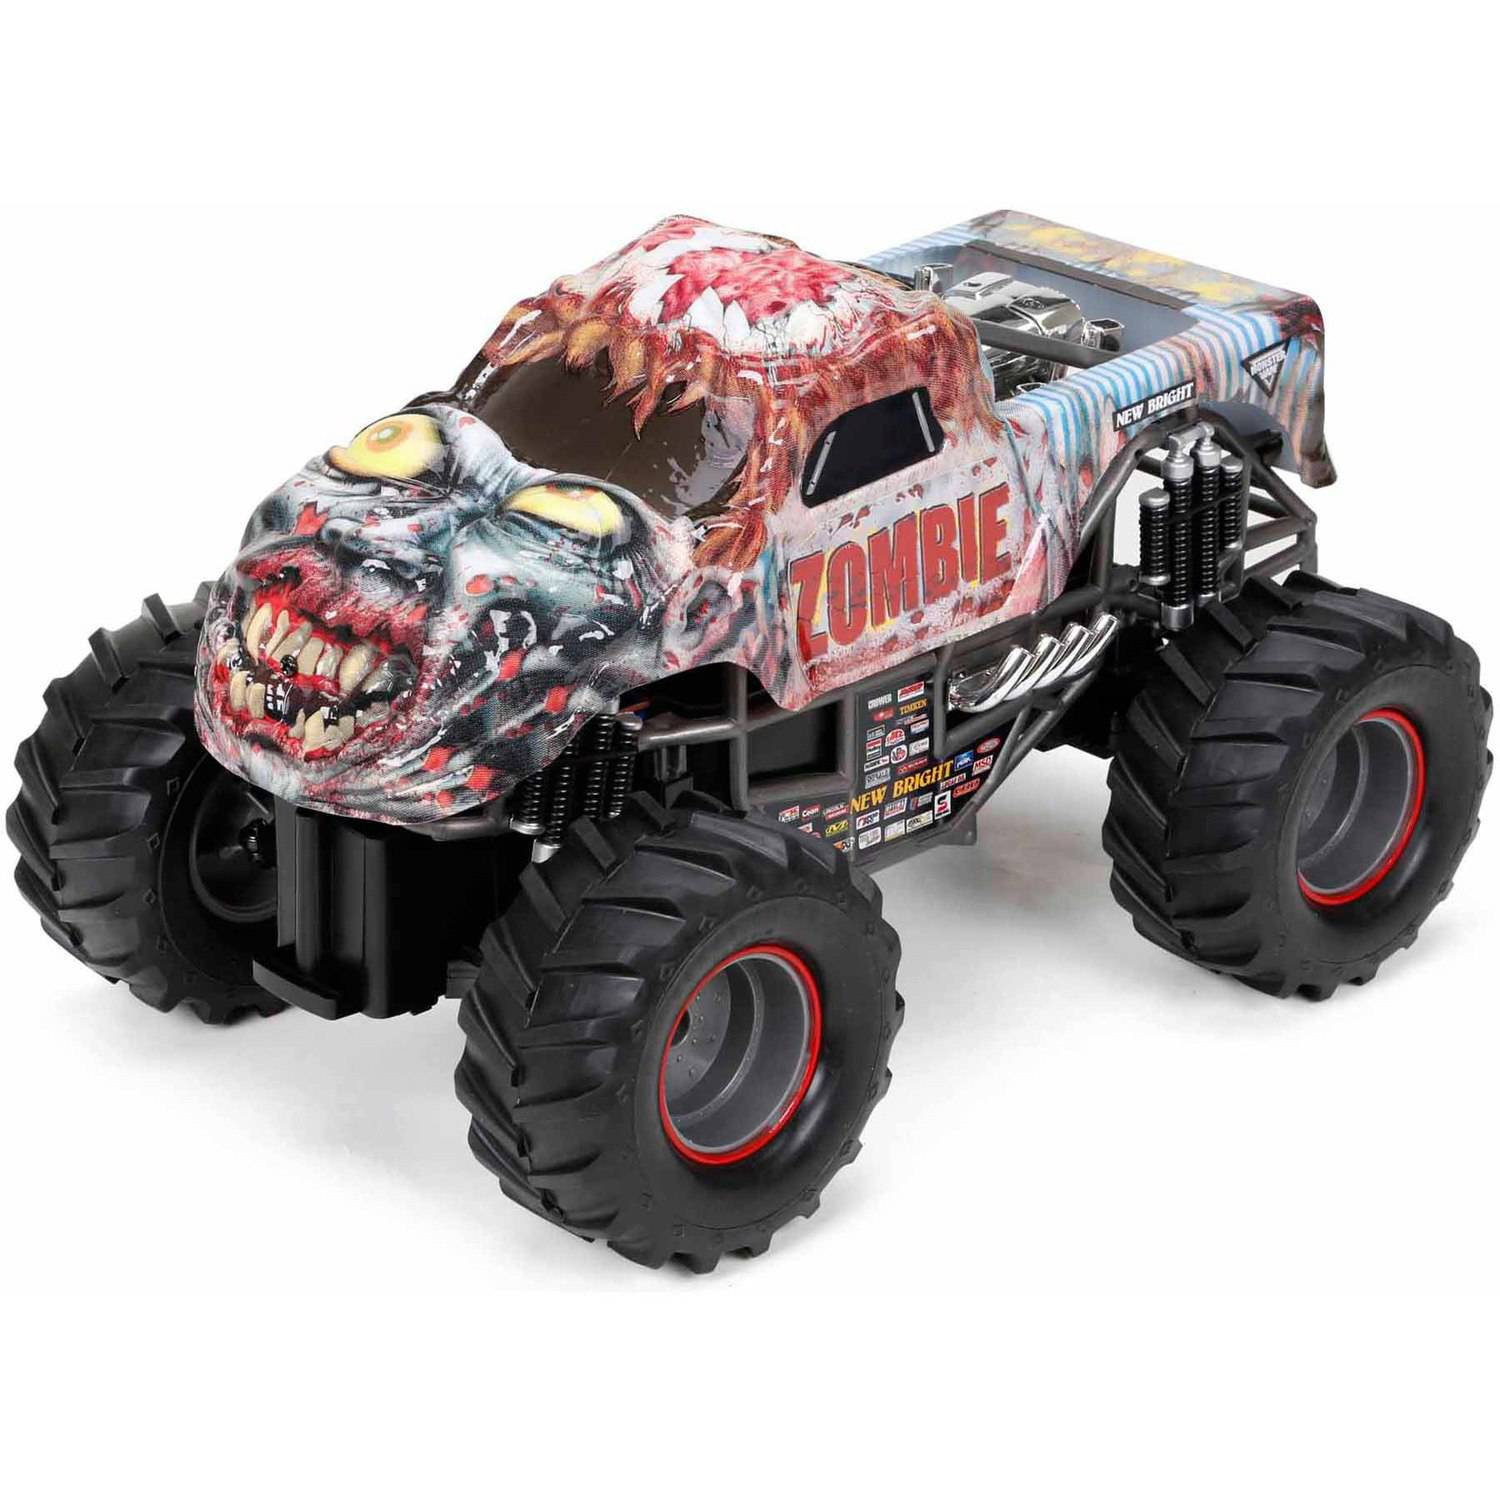 Monster Jam Zombie Full Function Radio-Controlled Vehicle